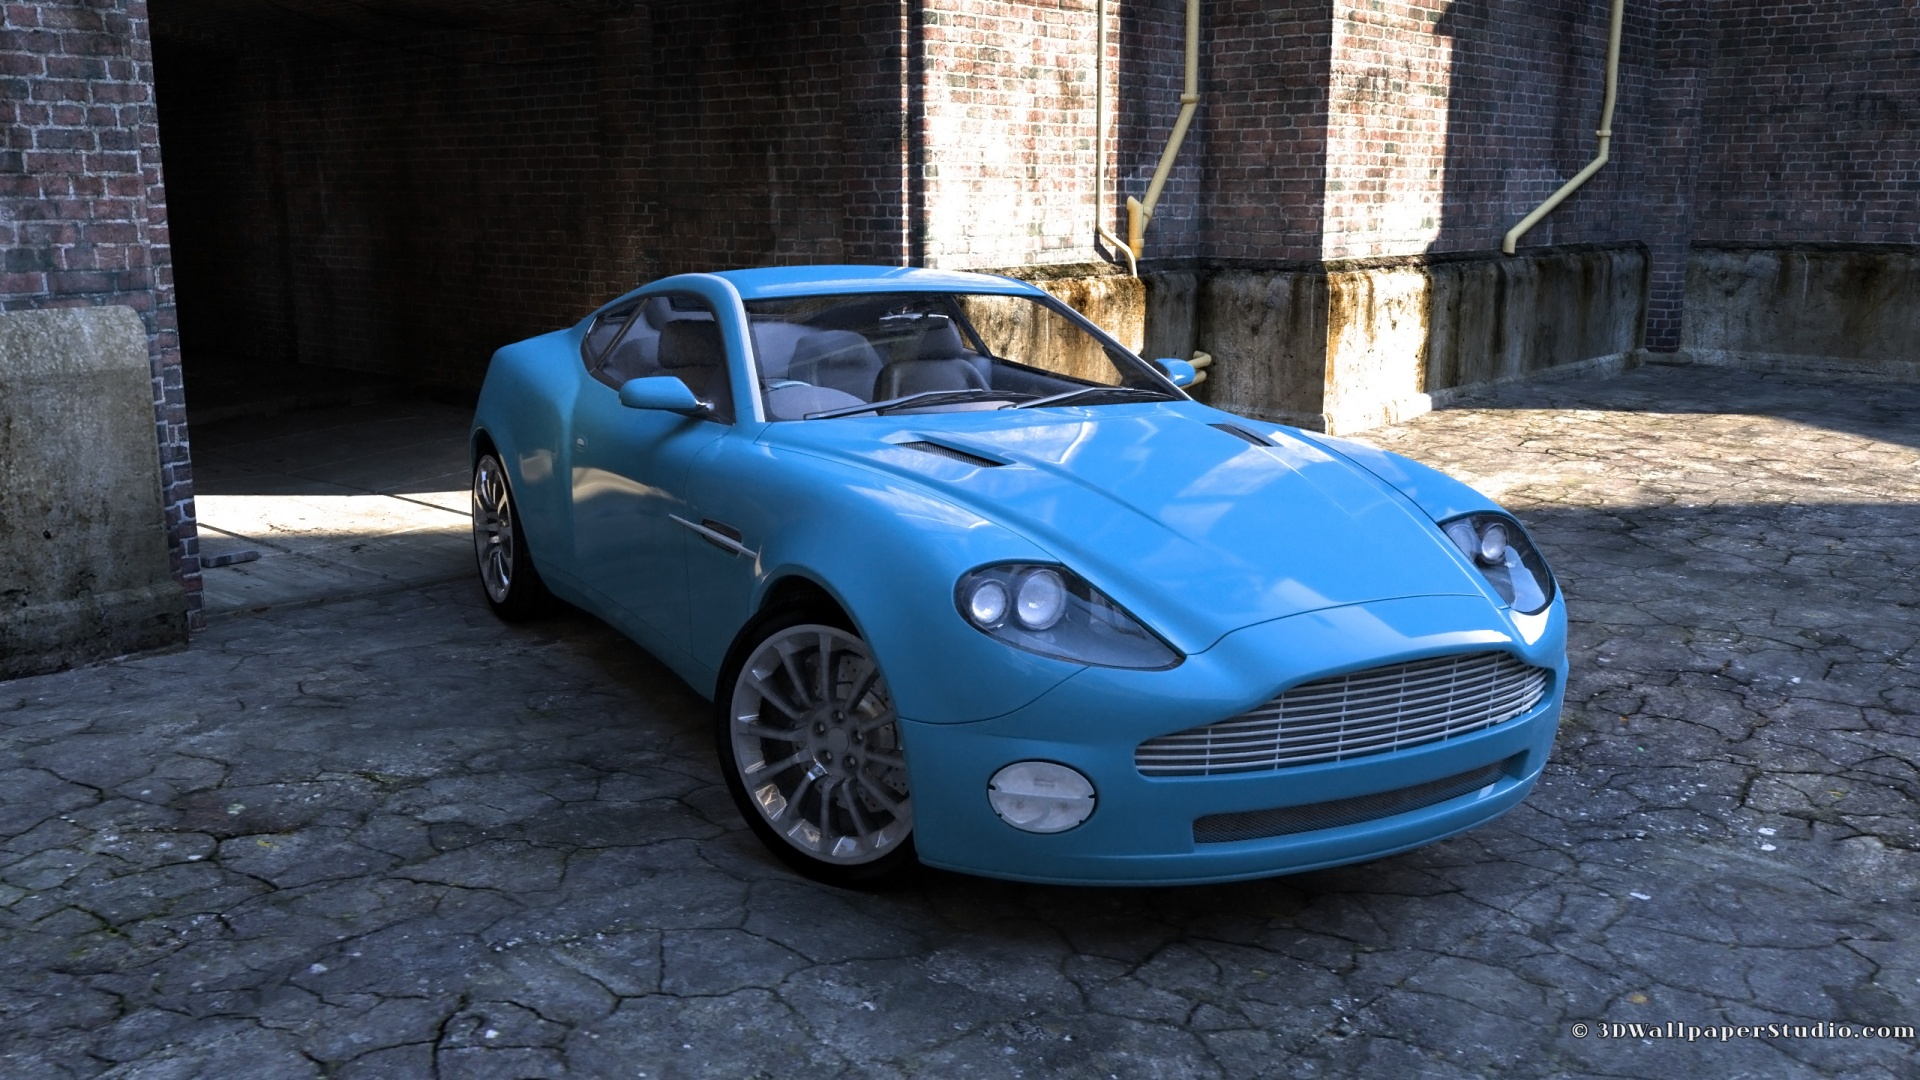 Blue super car wallpaper in 1920x1080 screen resolution 1920x1080